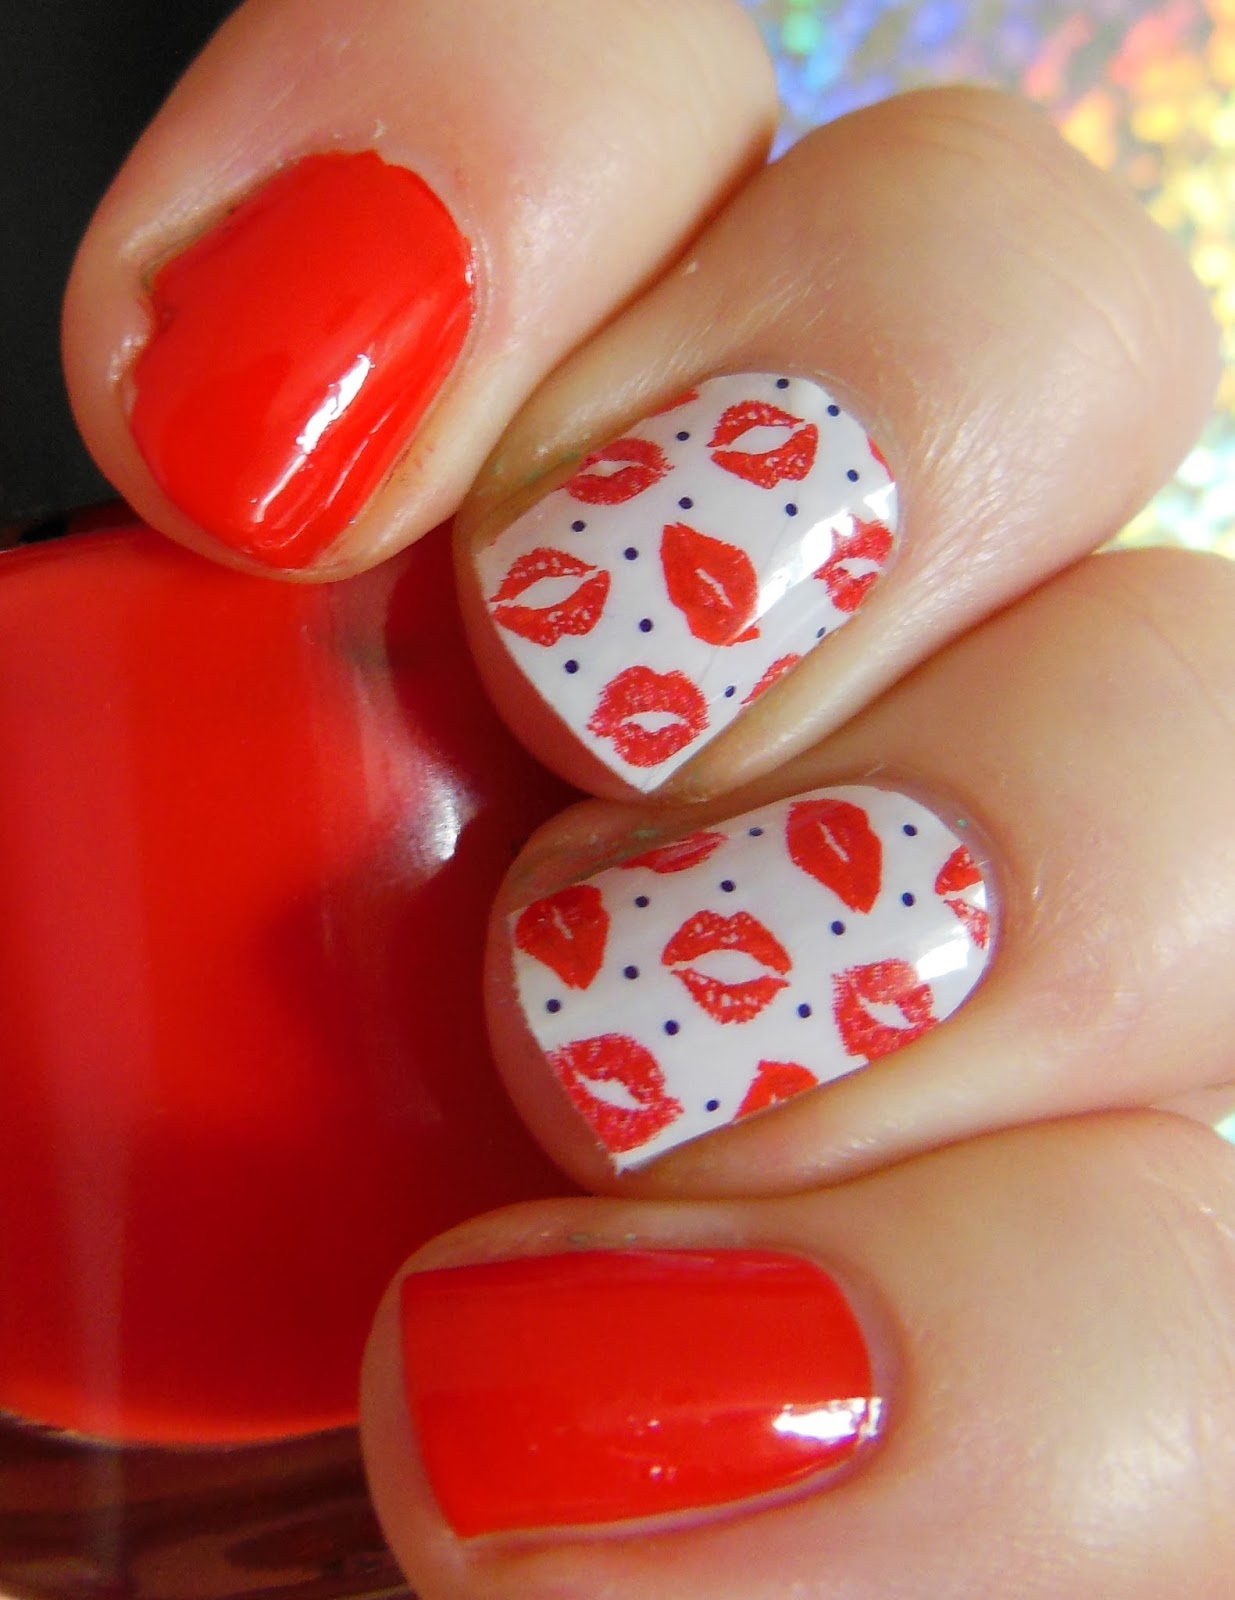 The Crumpet: Jamberry Nail Wraps - Official Review